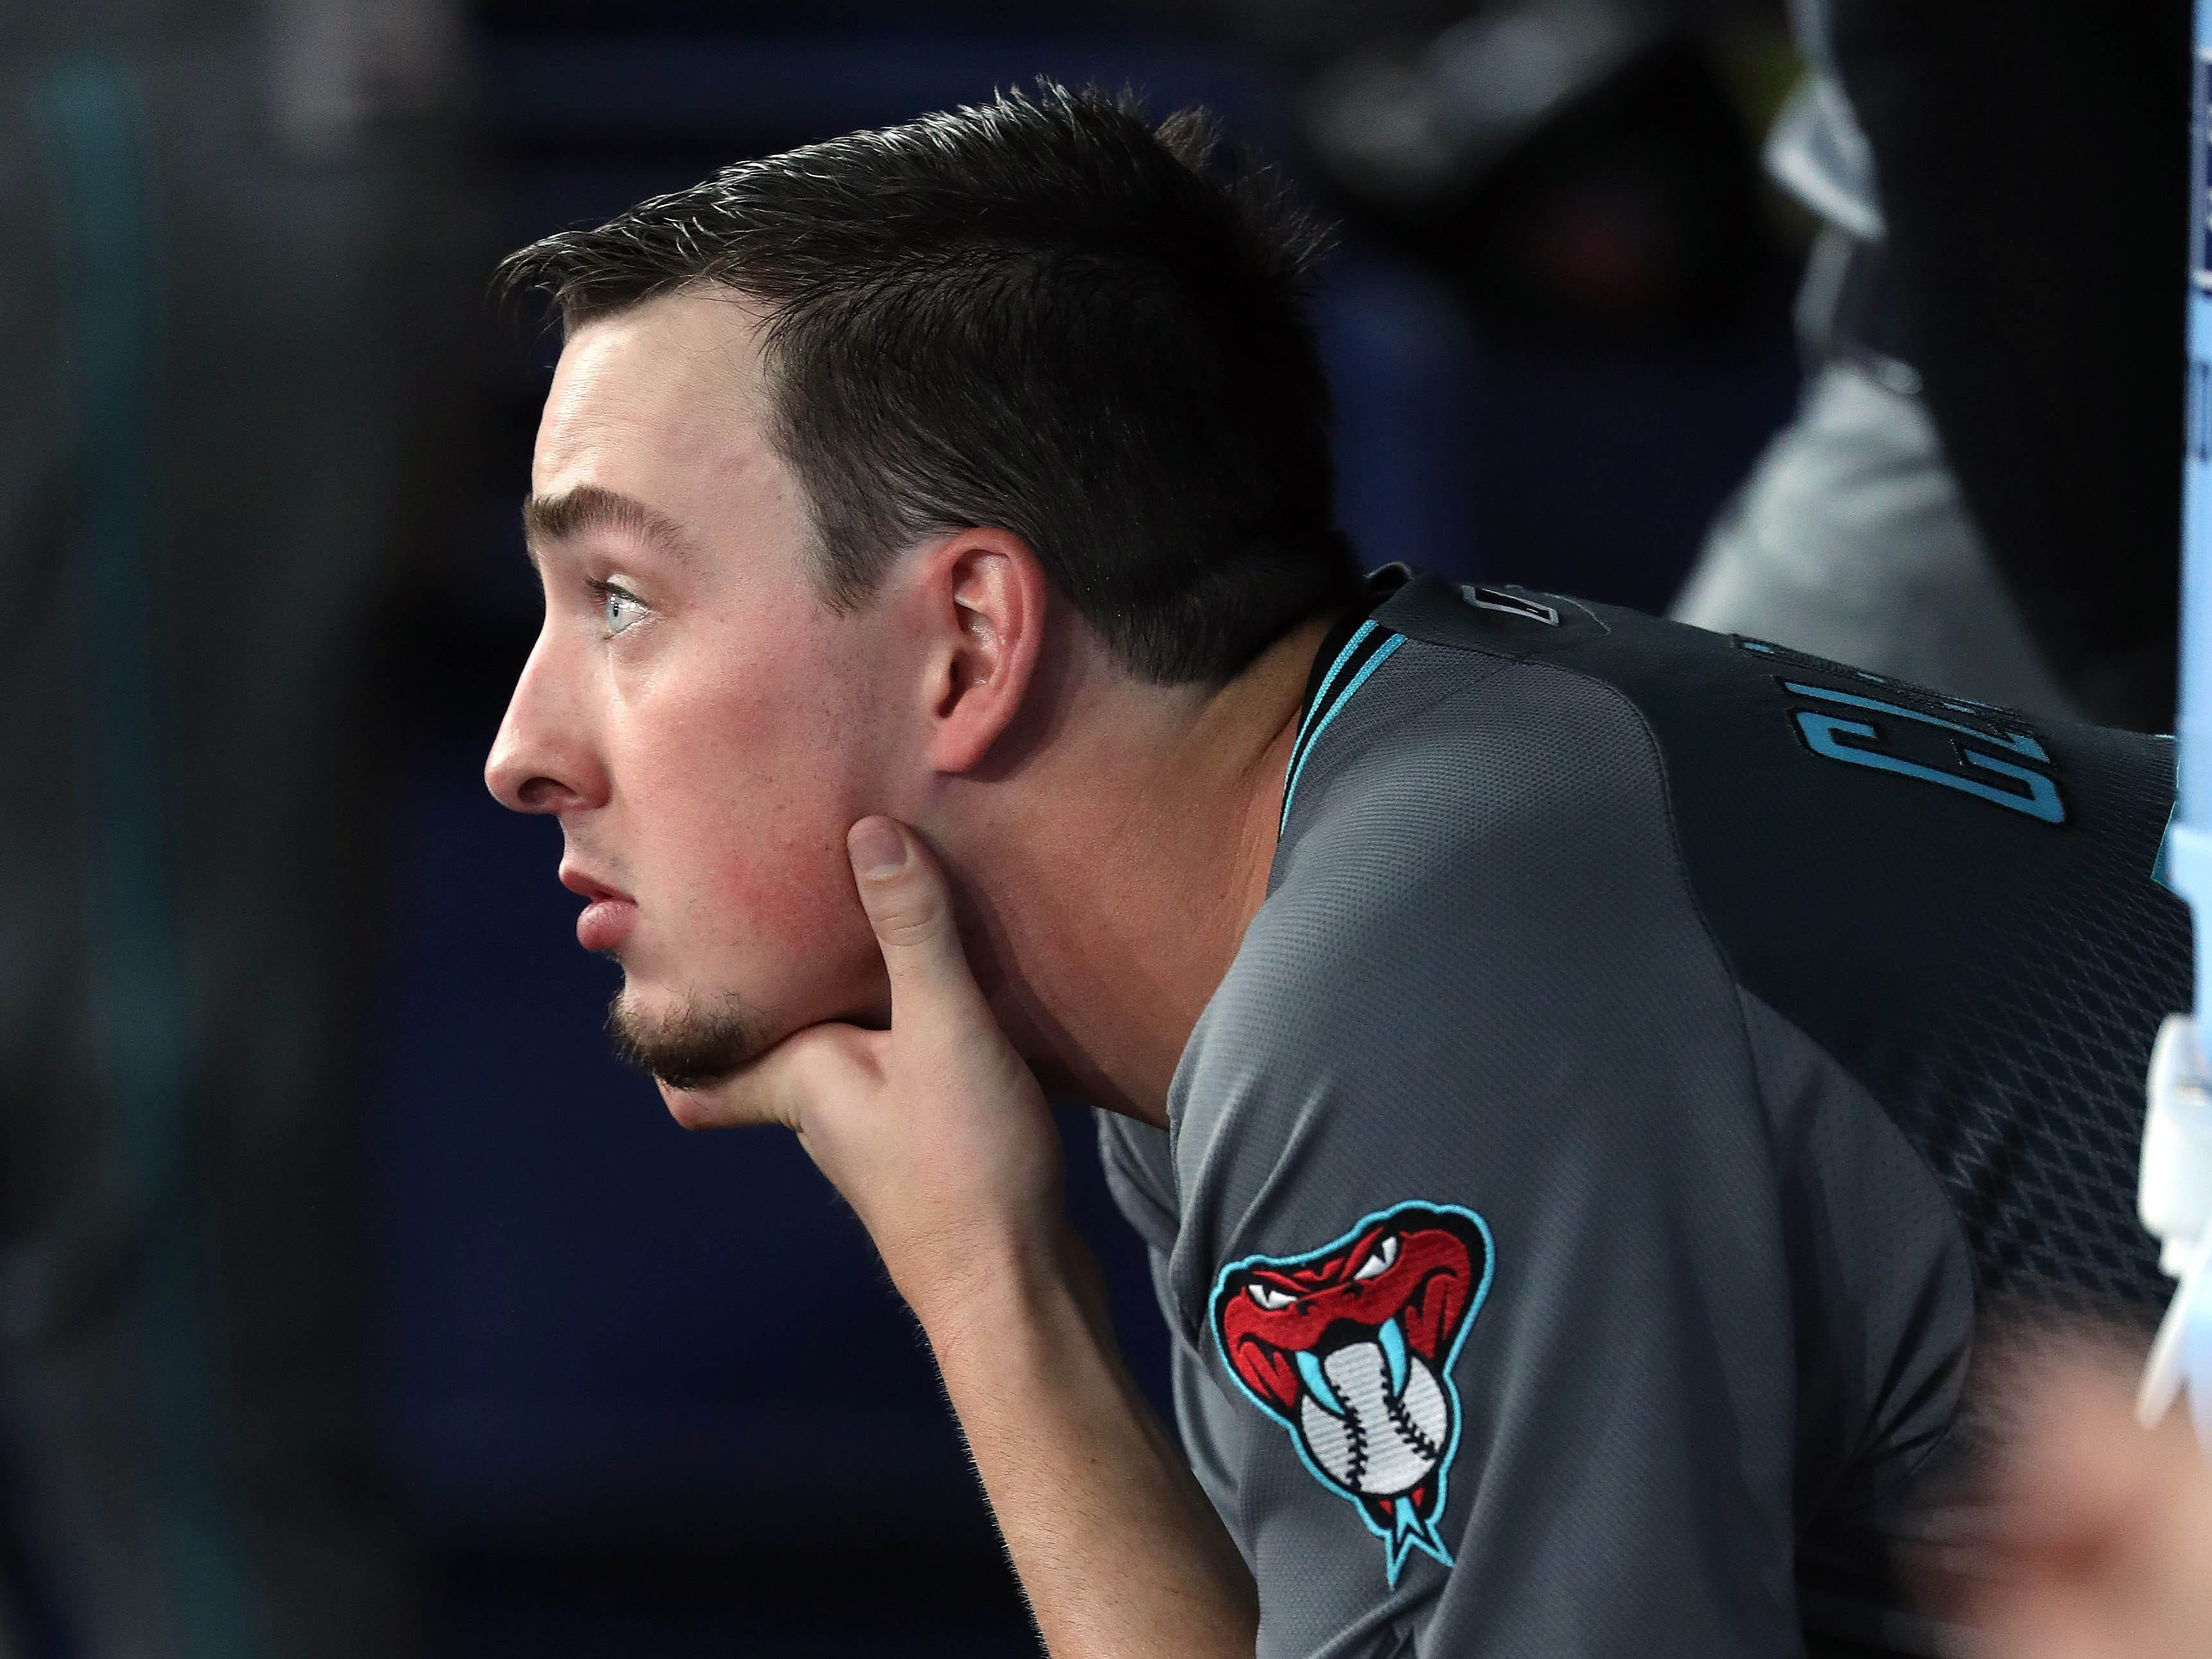 May 7, 2019; St. Petersburg, FL, USA; Arizona Diamondbacks starting pitcher Taylor Clarke (45) looks on from the dugout during the third inning against the Tampa Bay Rays at Tropicana Field. Mandatory Credit: Kim Klement-USA TODAY Sports